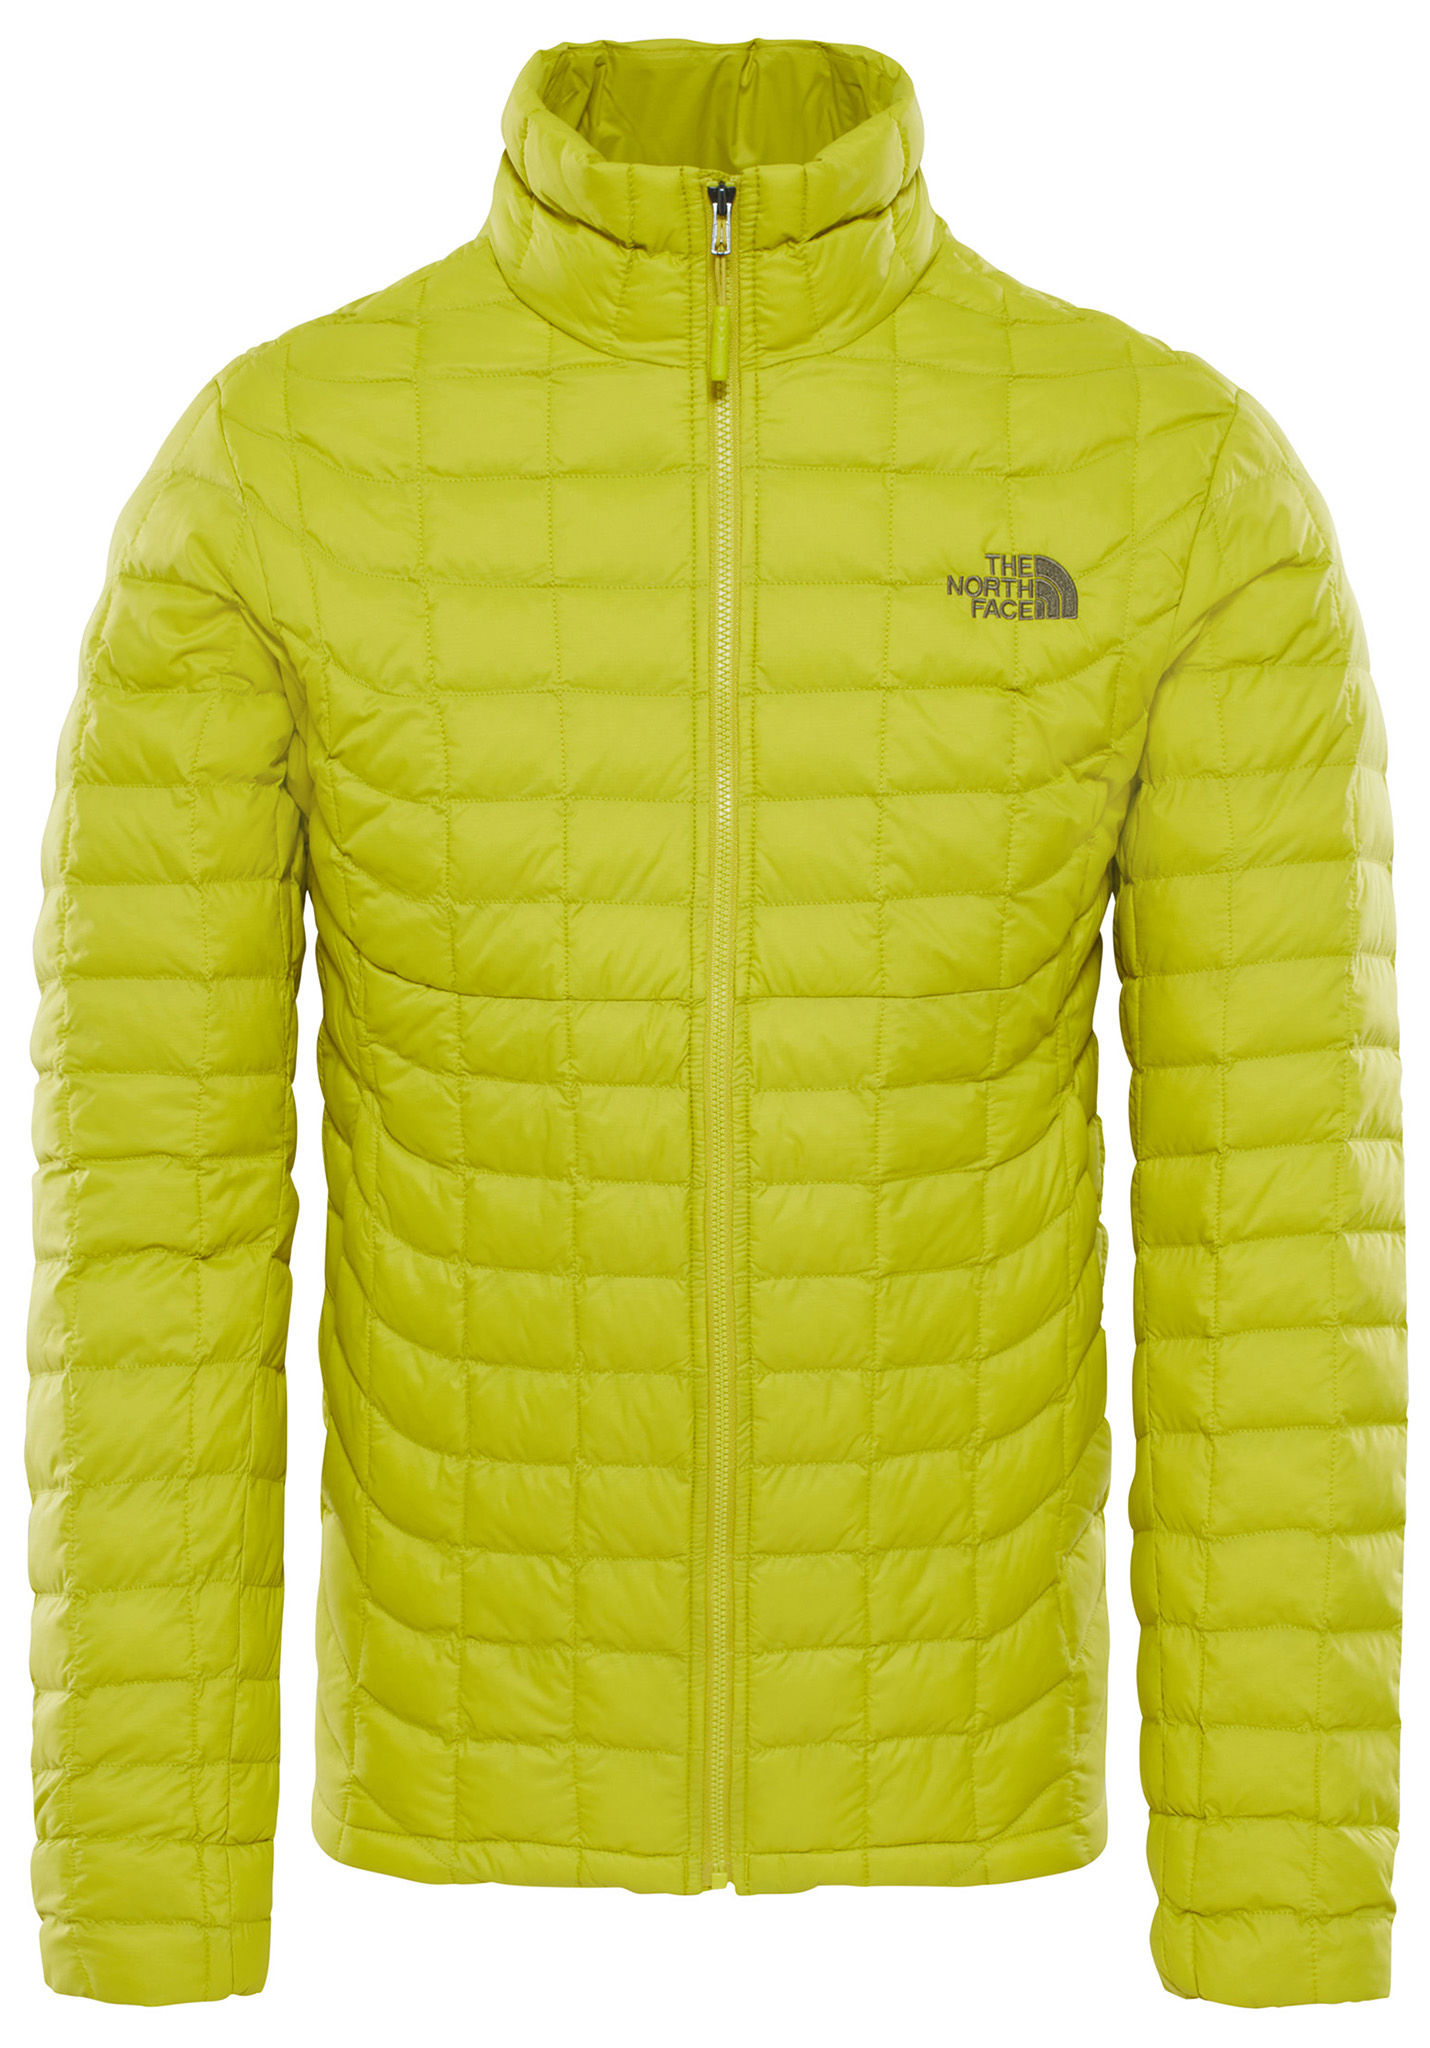 8ec28033932 THE NORTH FACE Thermoball - Outdoor Jacket for Men - Green - Planet Sports